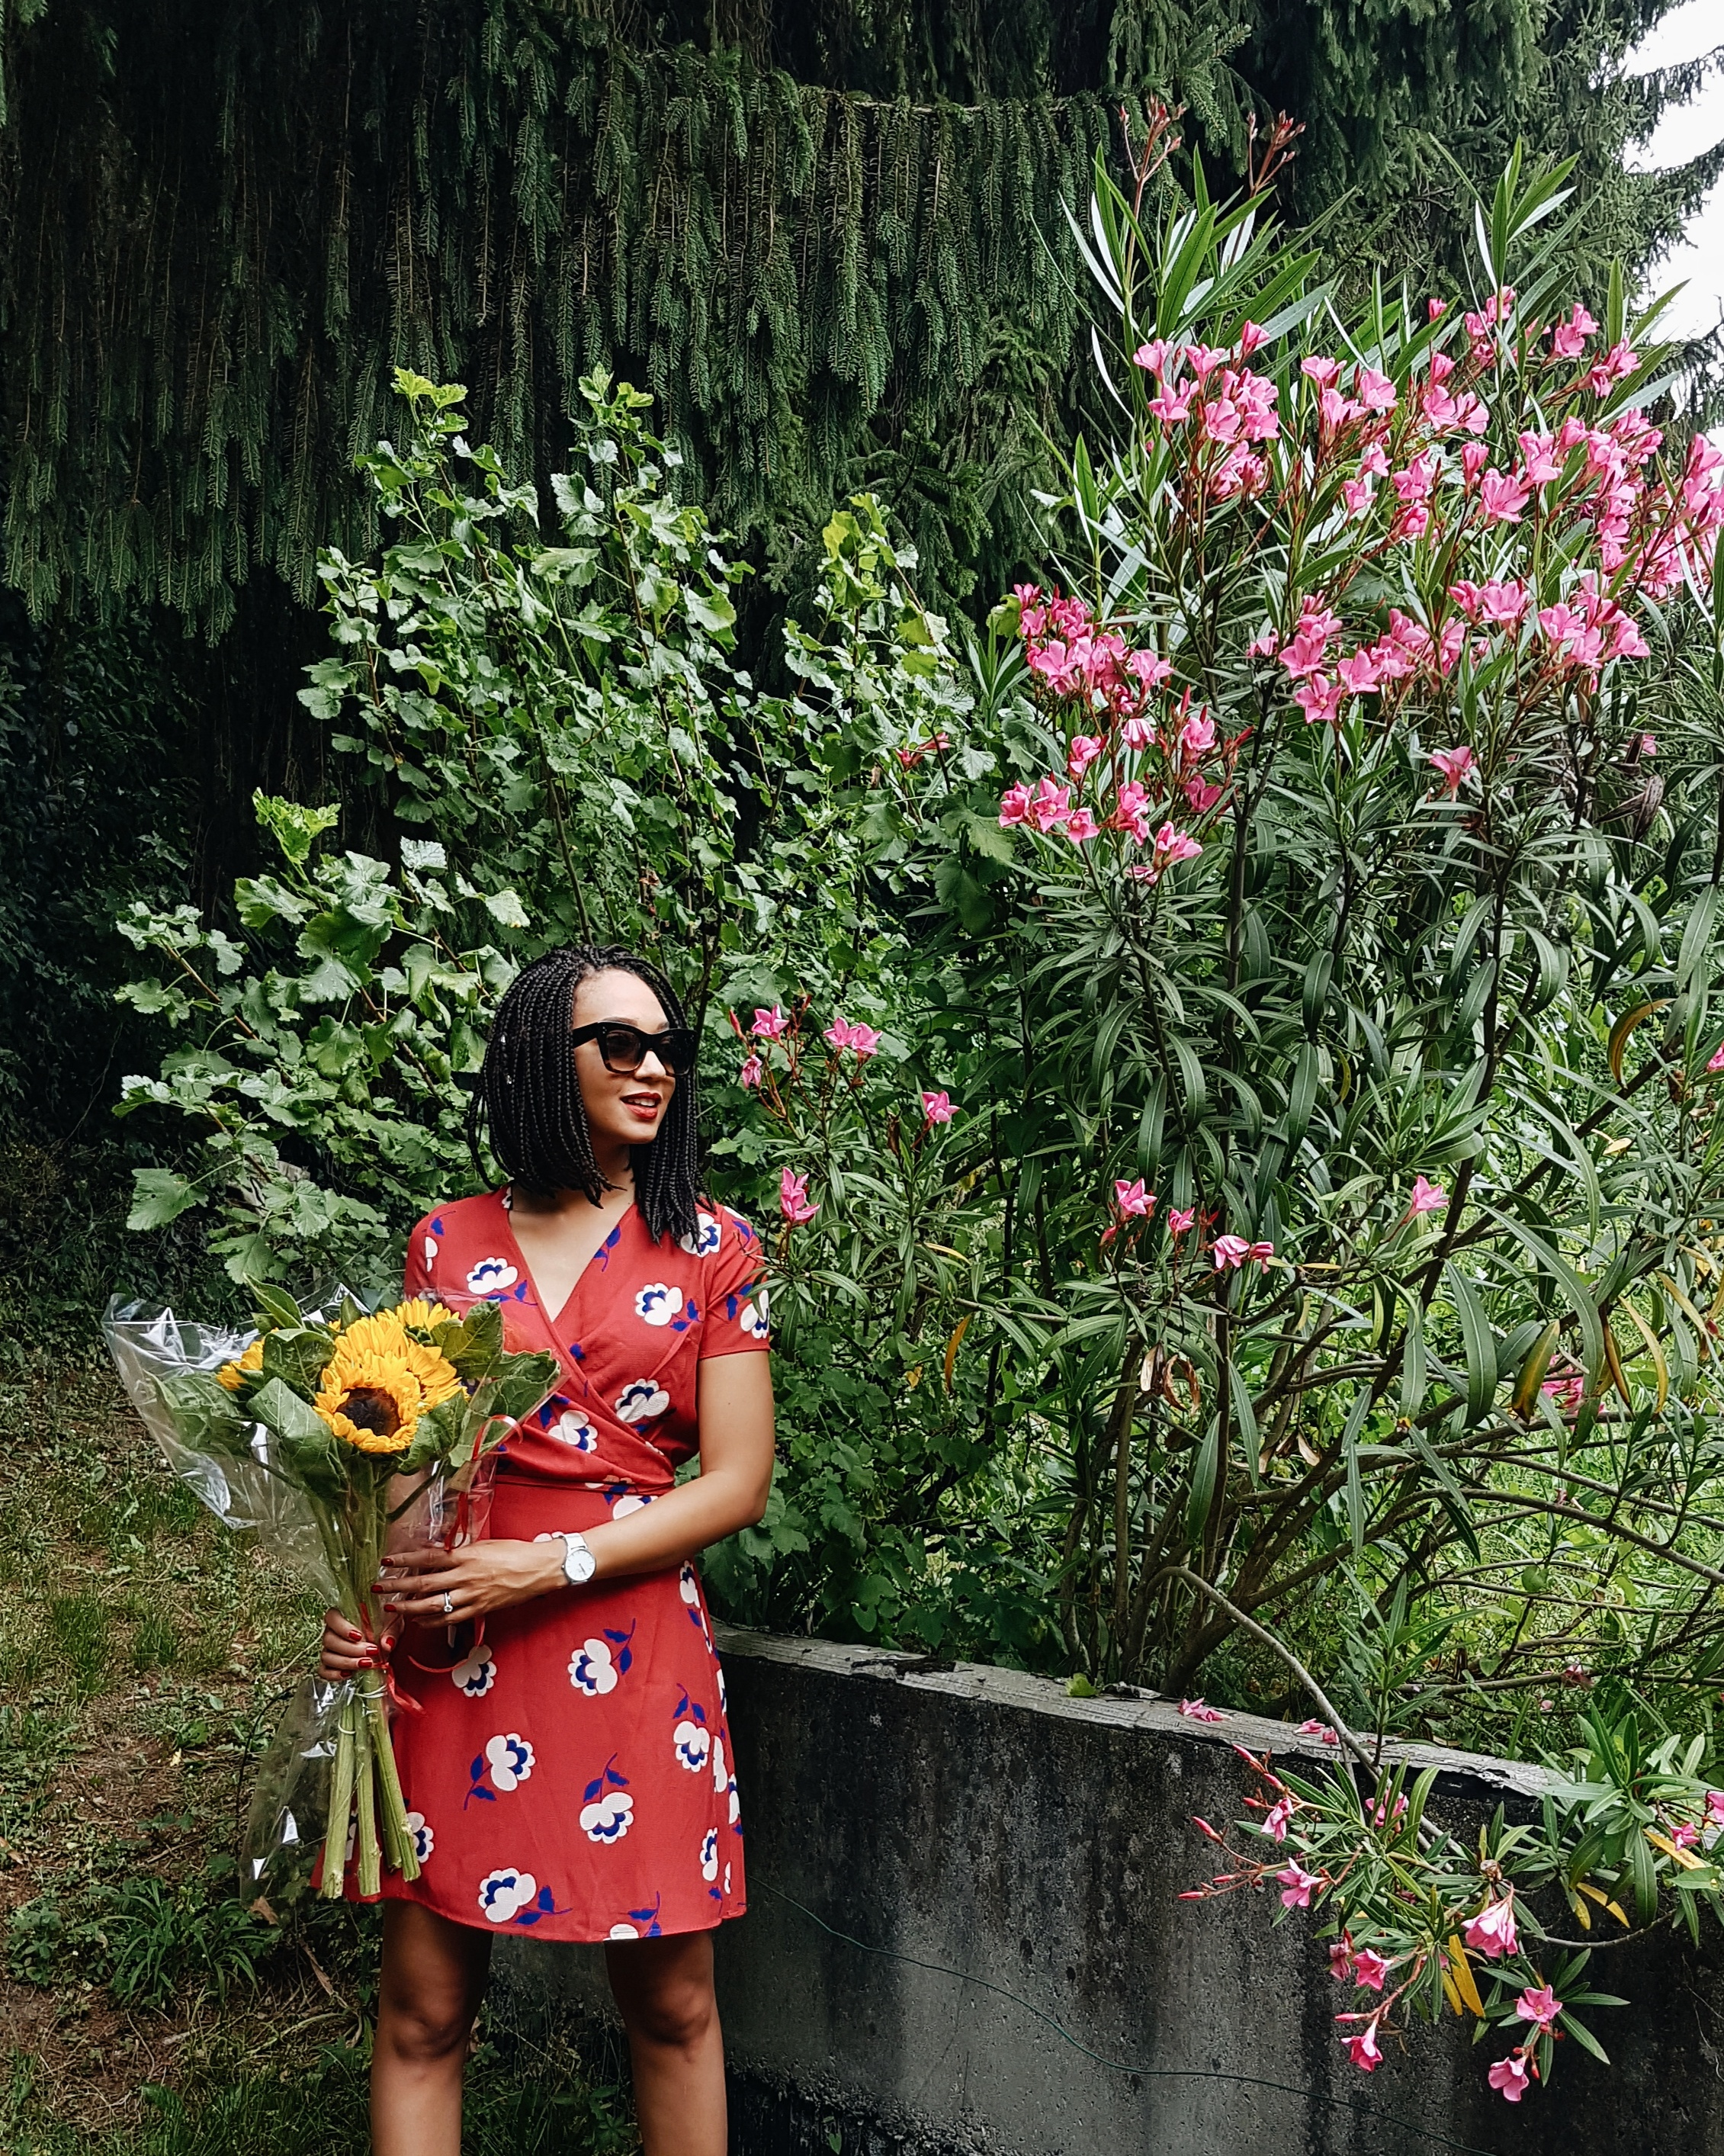 mercredie-fashion-blog-mode-geneve-switzerland-dress-portefeuille-robe-red-rouge-realisation-par-la-redoute-rouje-dupe-similar-celine-shades-sunglasses-marta-box-braids-style